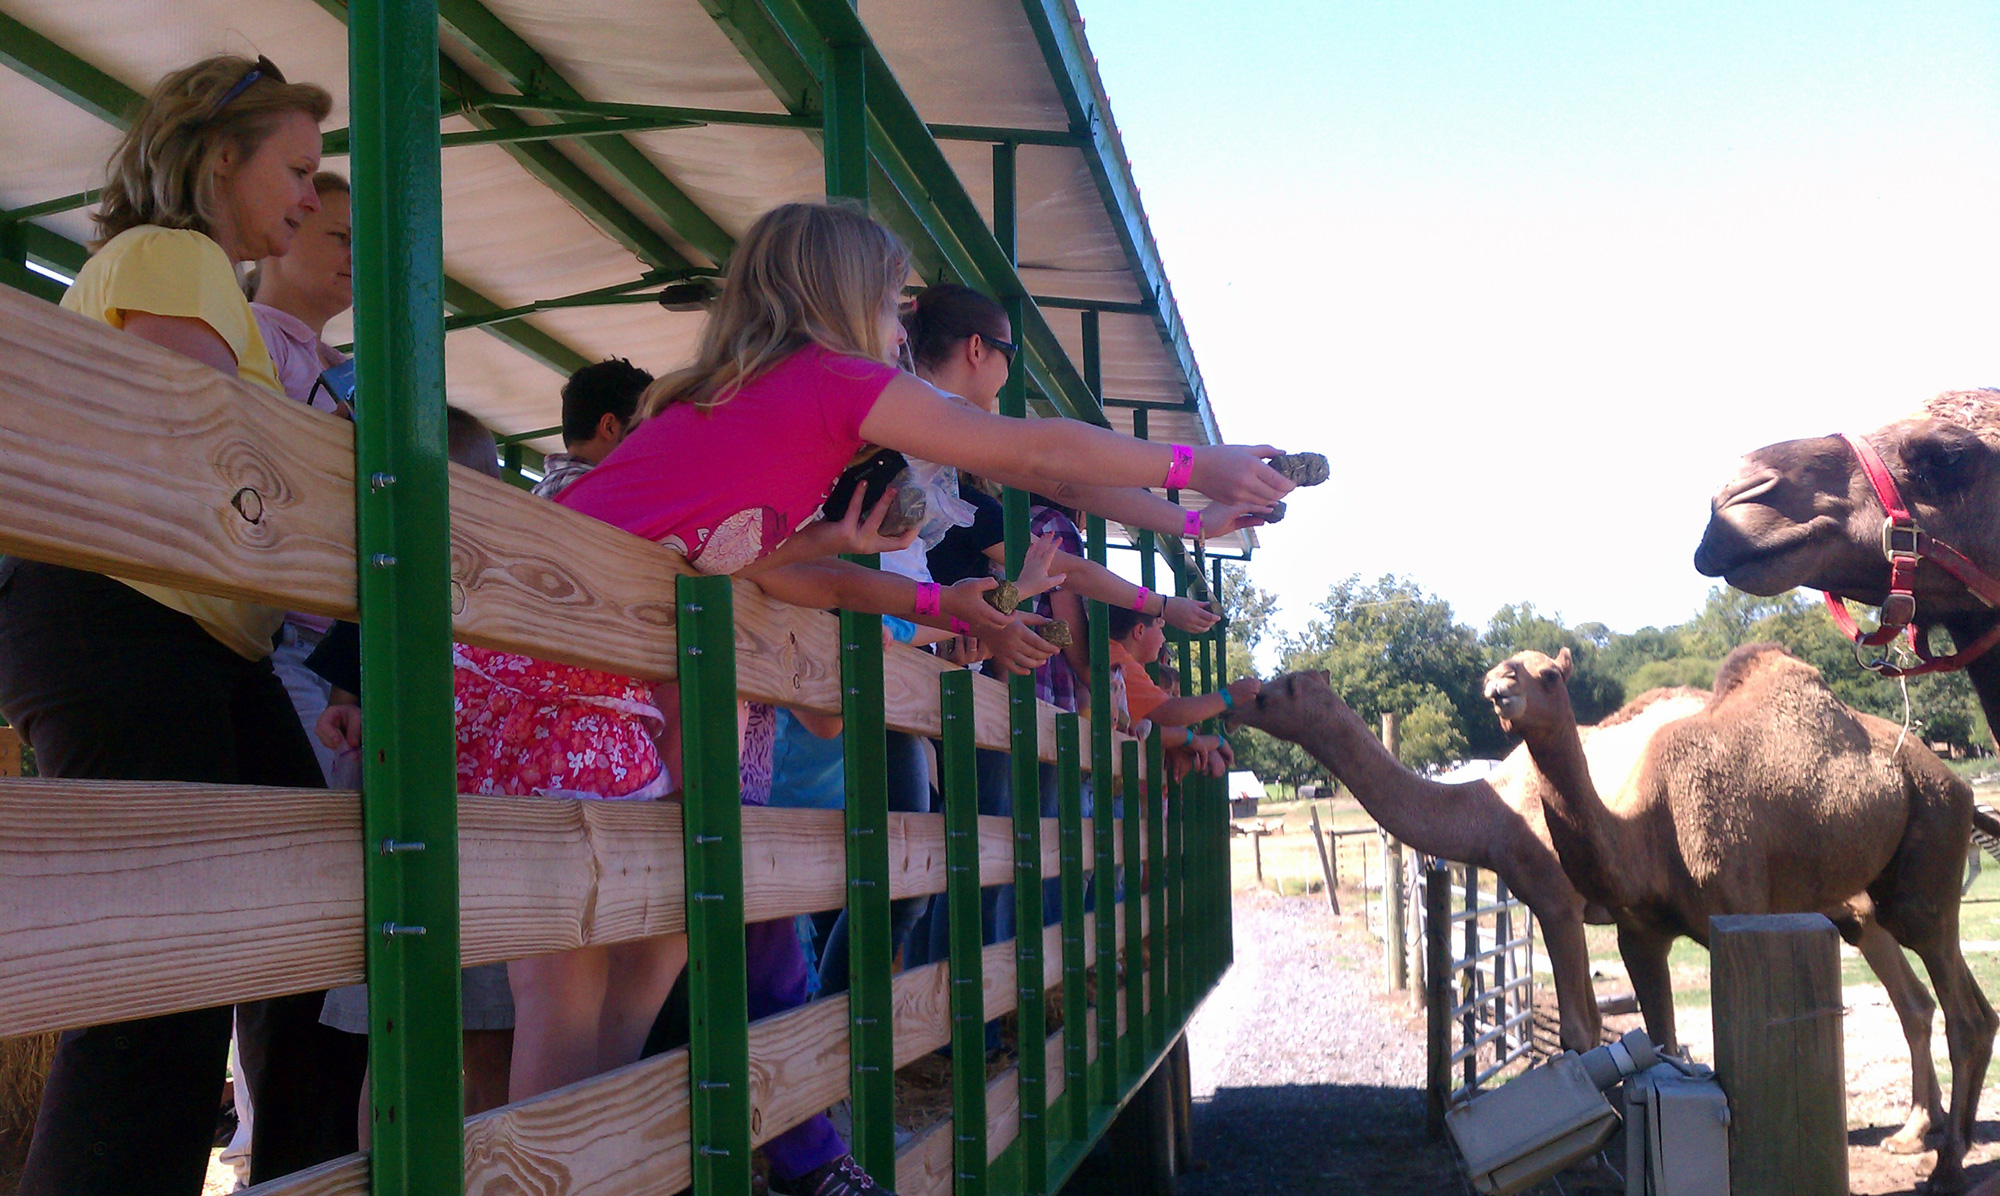 Take a hayride at Pettit Creek Farms and feed adult camels, too.